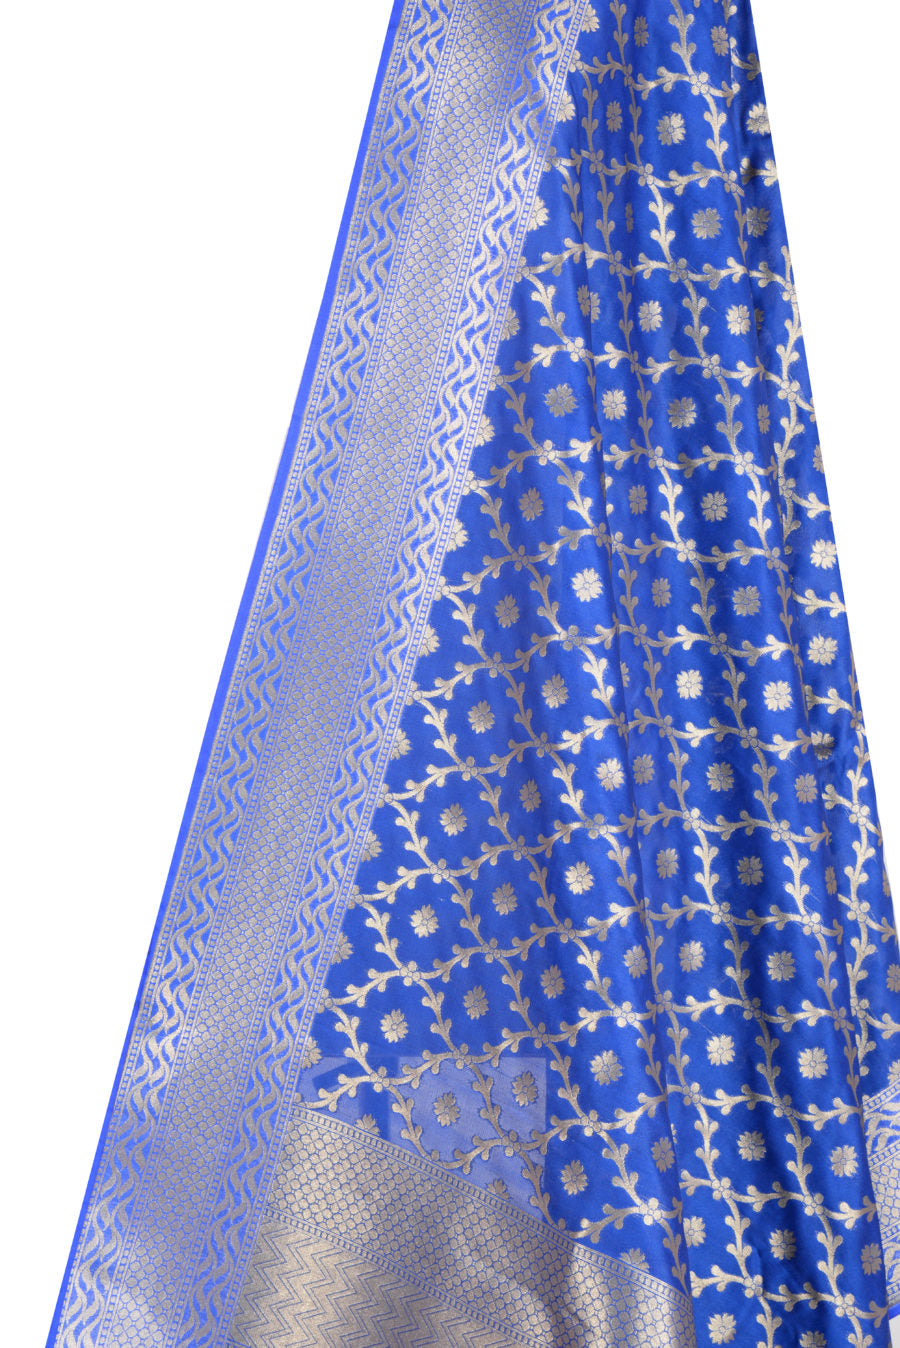 Blue Banarasi Dupatta with mini leaf jaal and floral motifs (2) Closeup